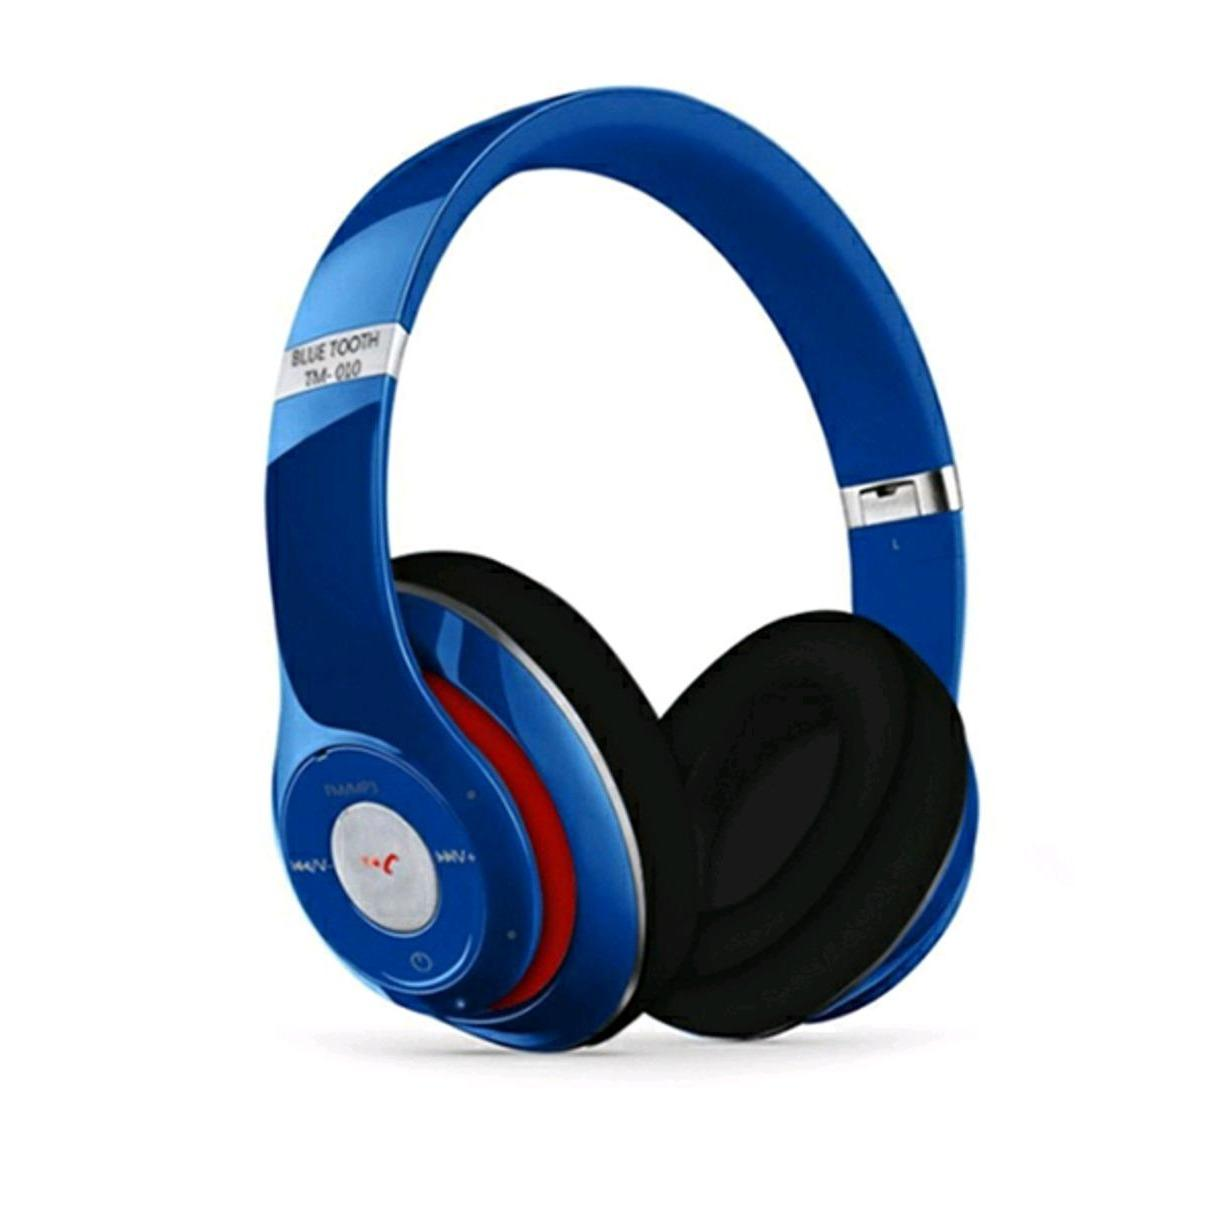 Beli Jbl Tm 010S Headphone Stereo Bluetooth Jbl Jbl